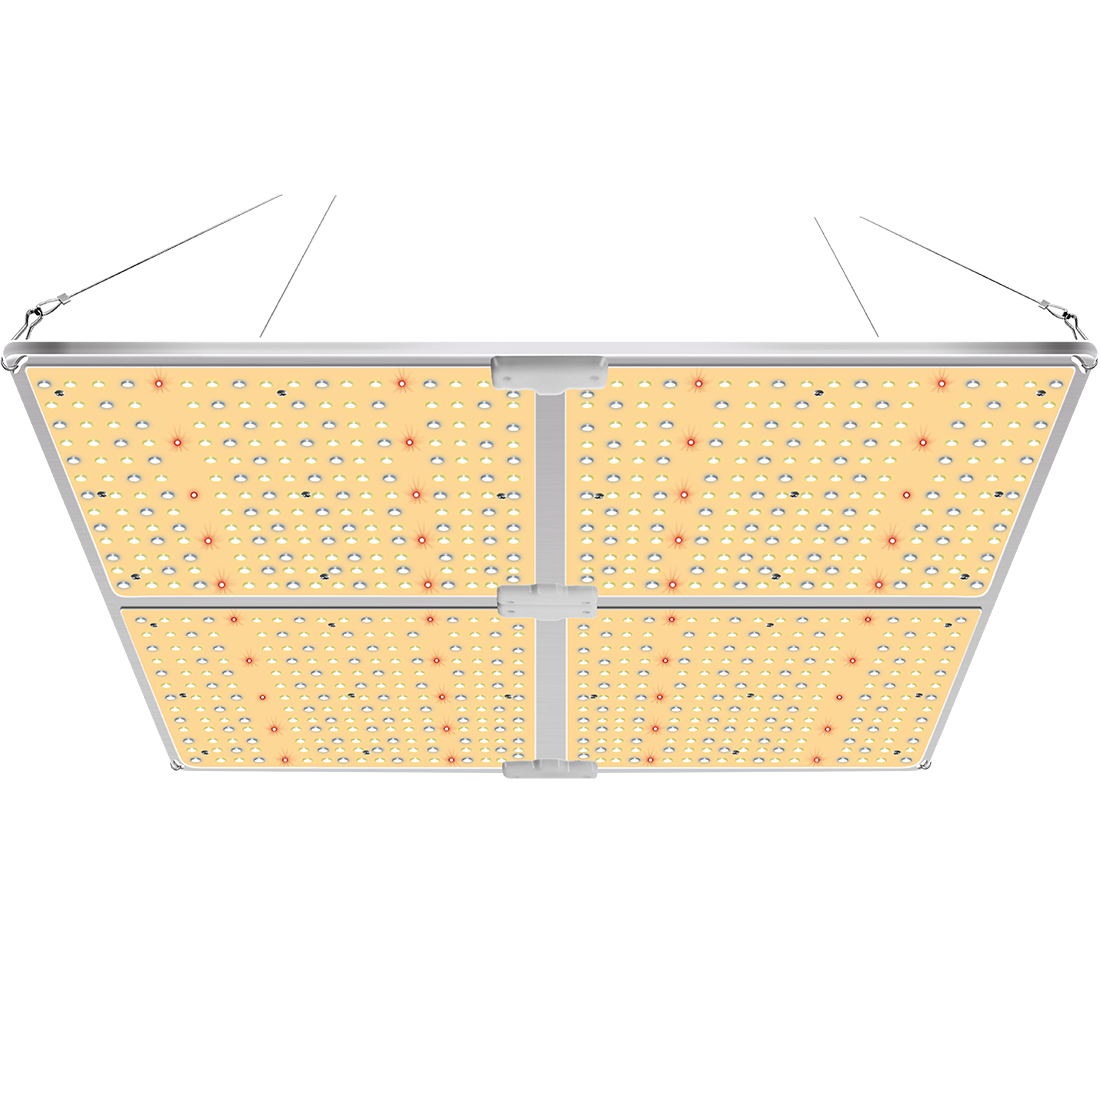 Stock In USA Samsung 301b  & meanwell ELG driver samsung lm301b 450W pcb led grow light with red 660nm ir 750nm